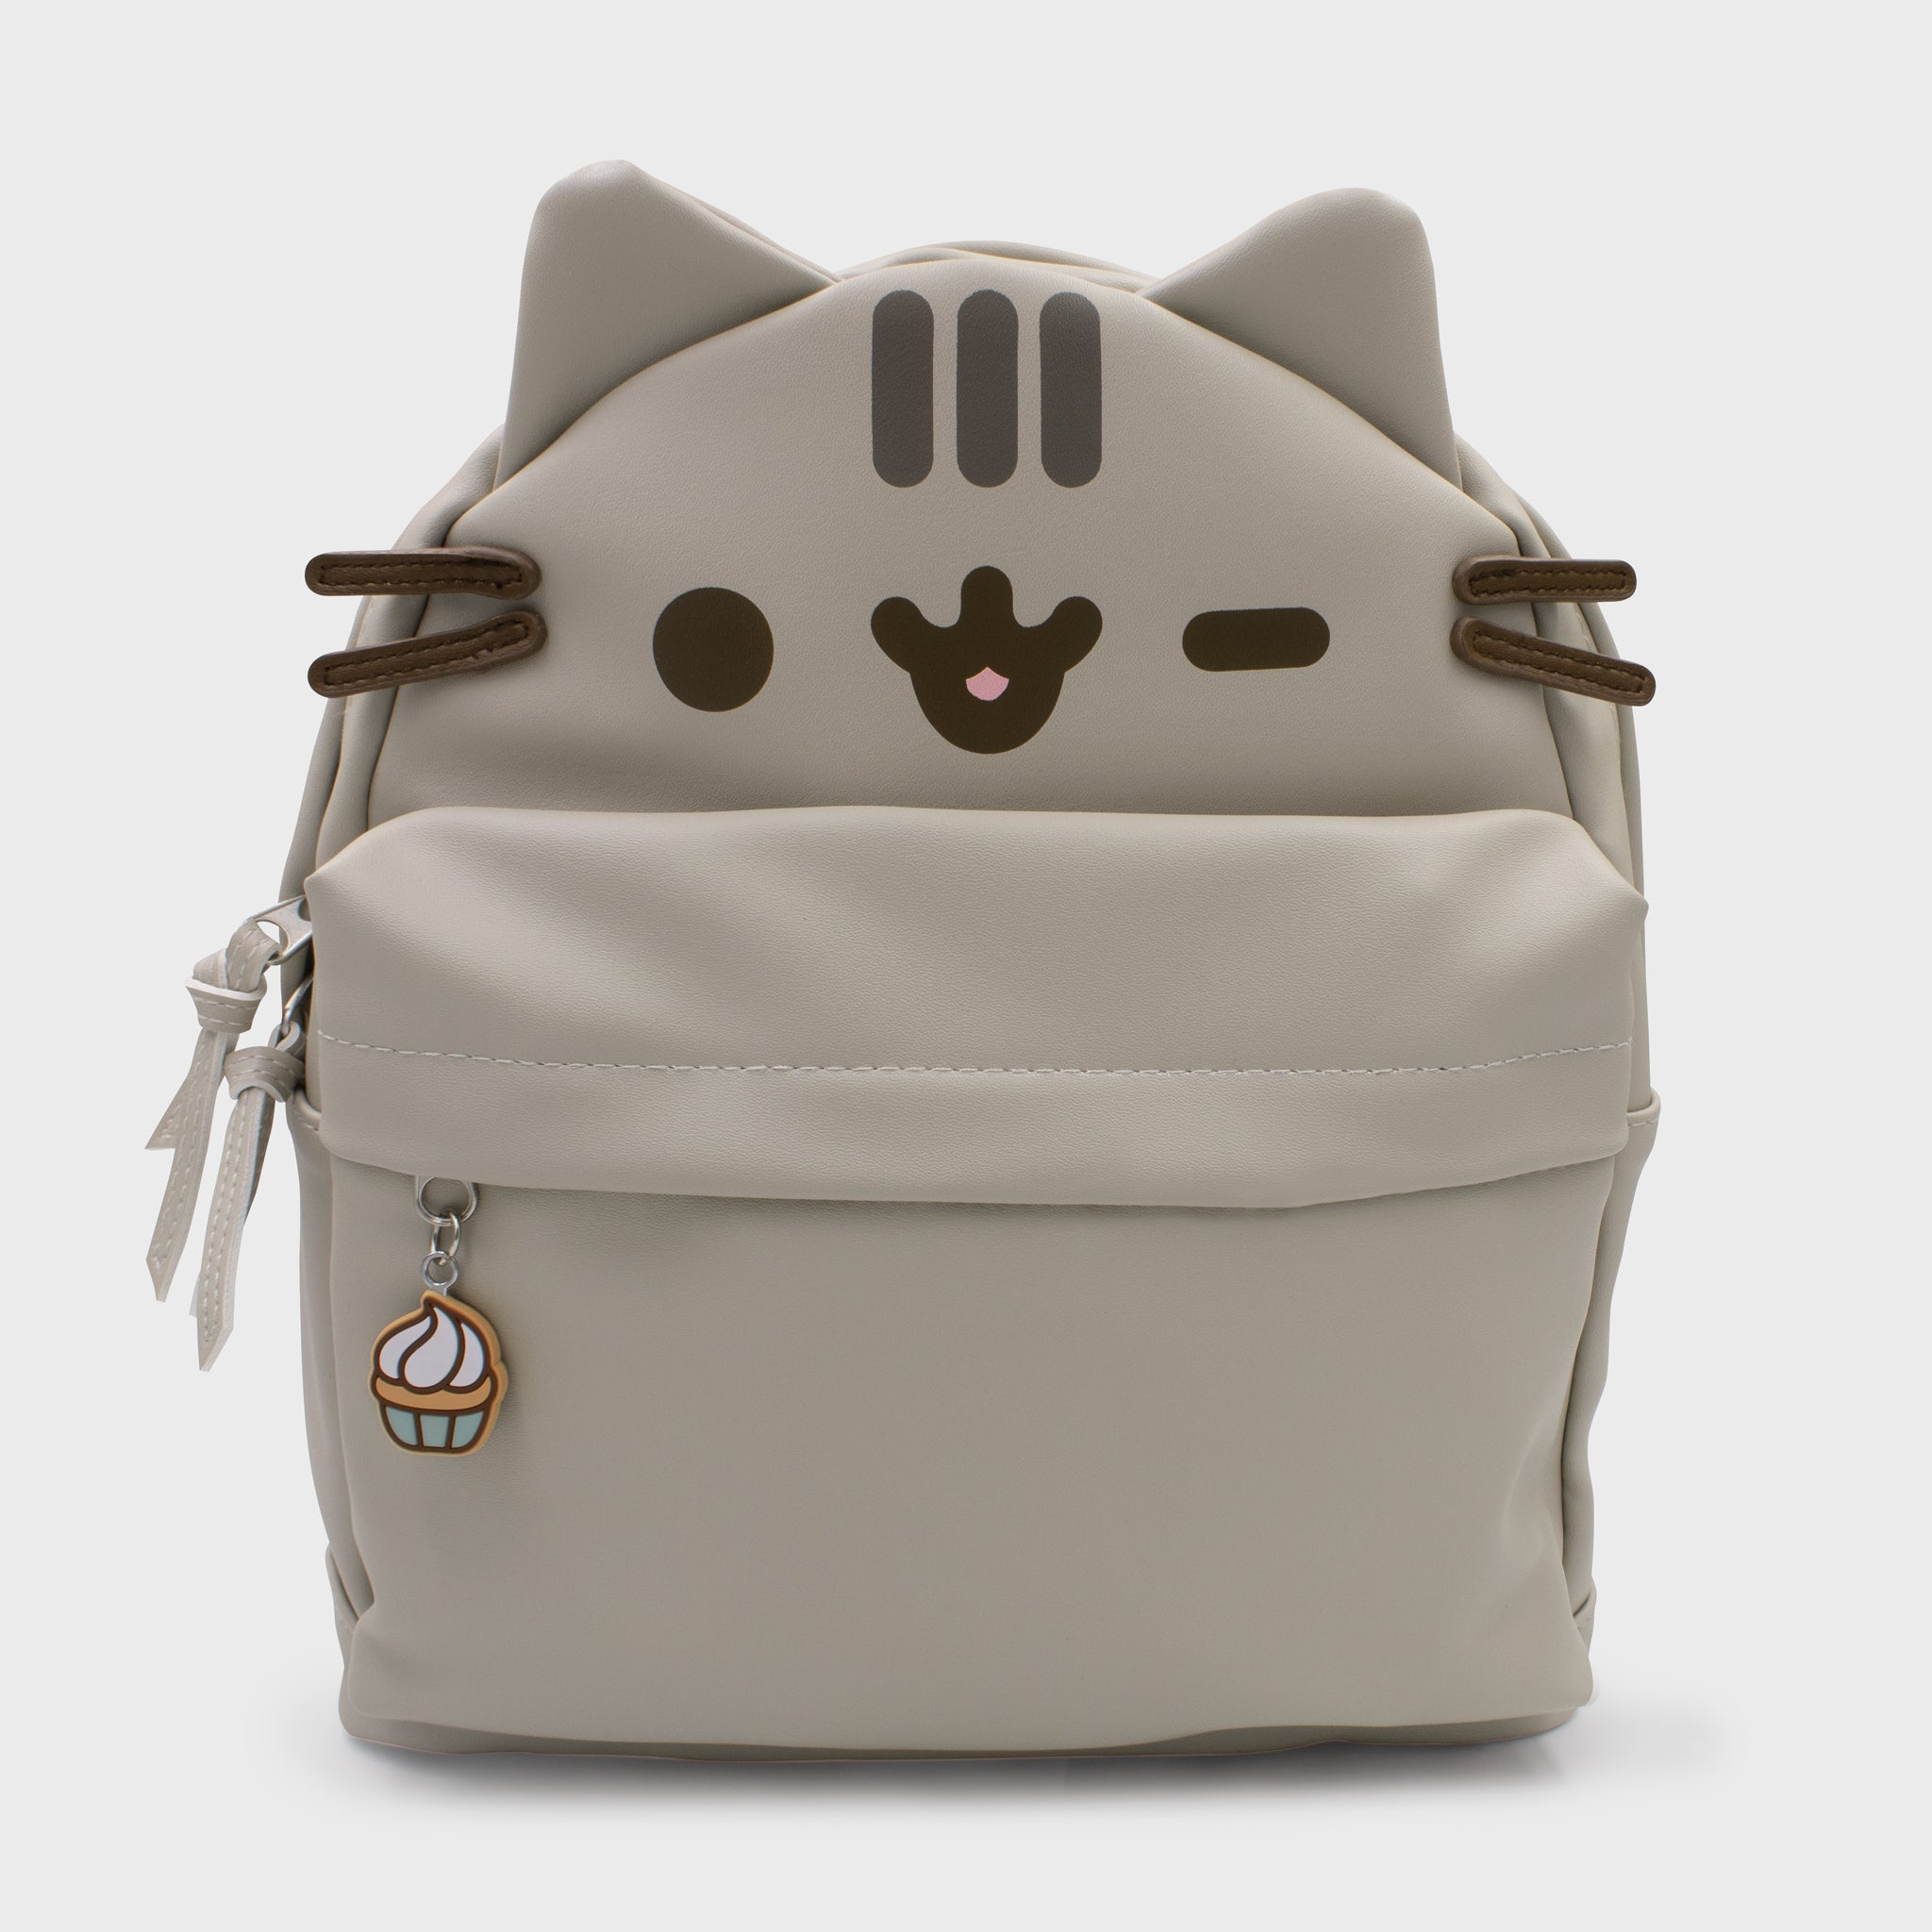 pusheen backpack bag wink cute cat small mini culturefly